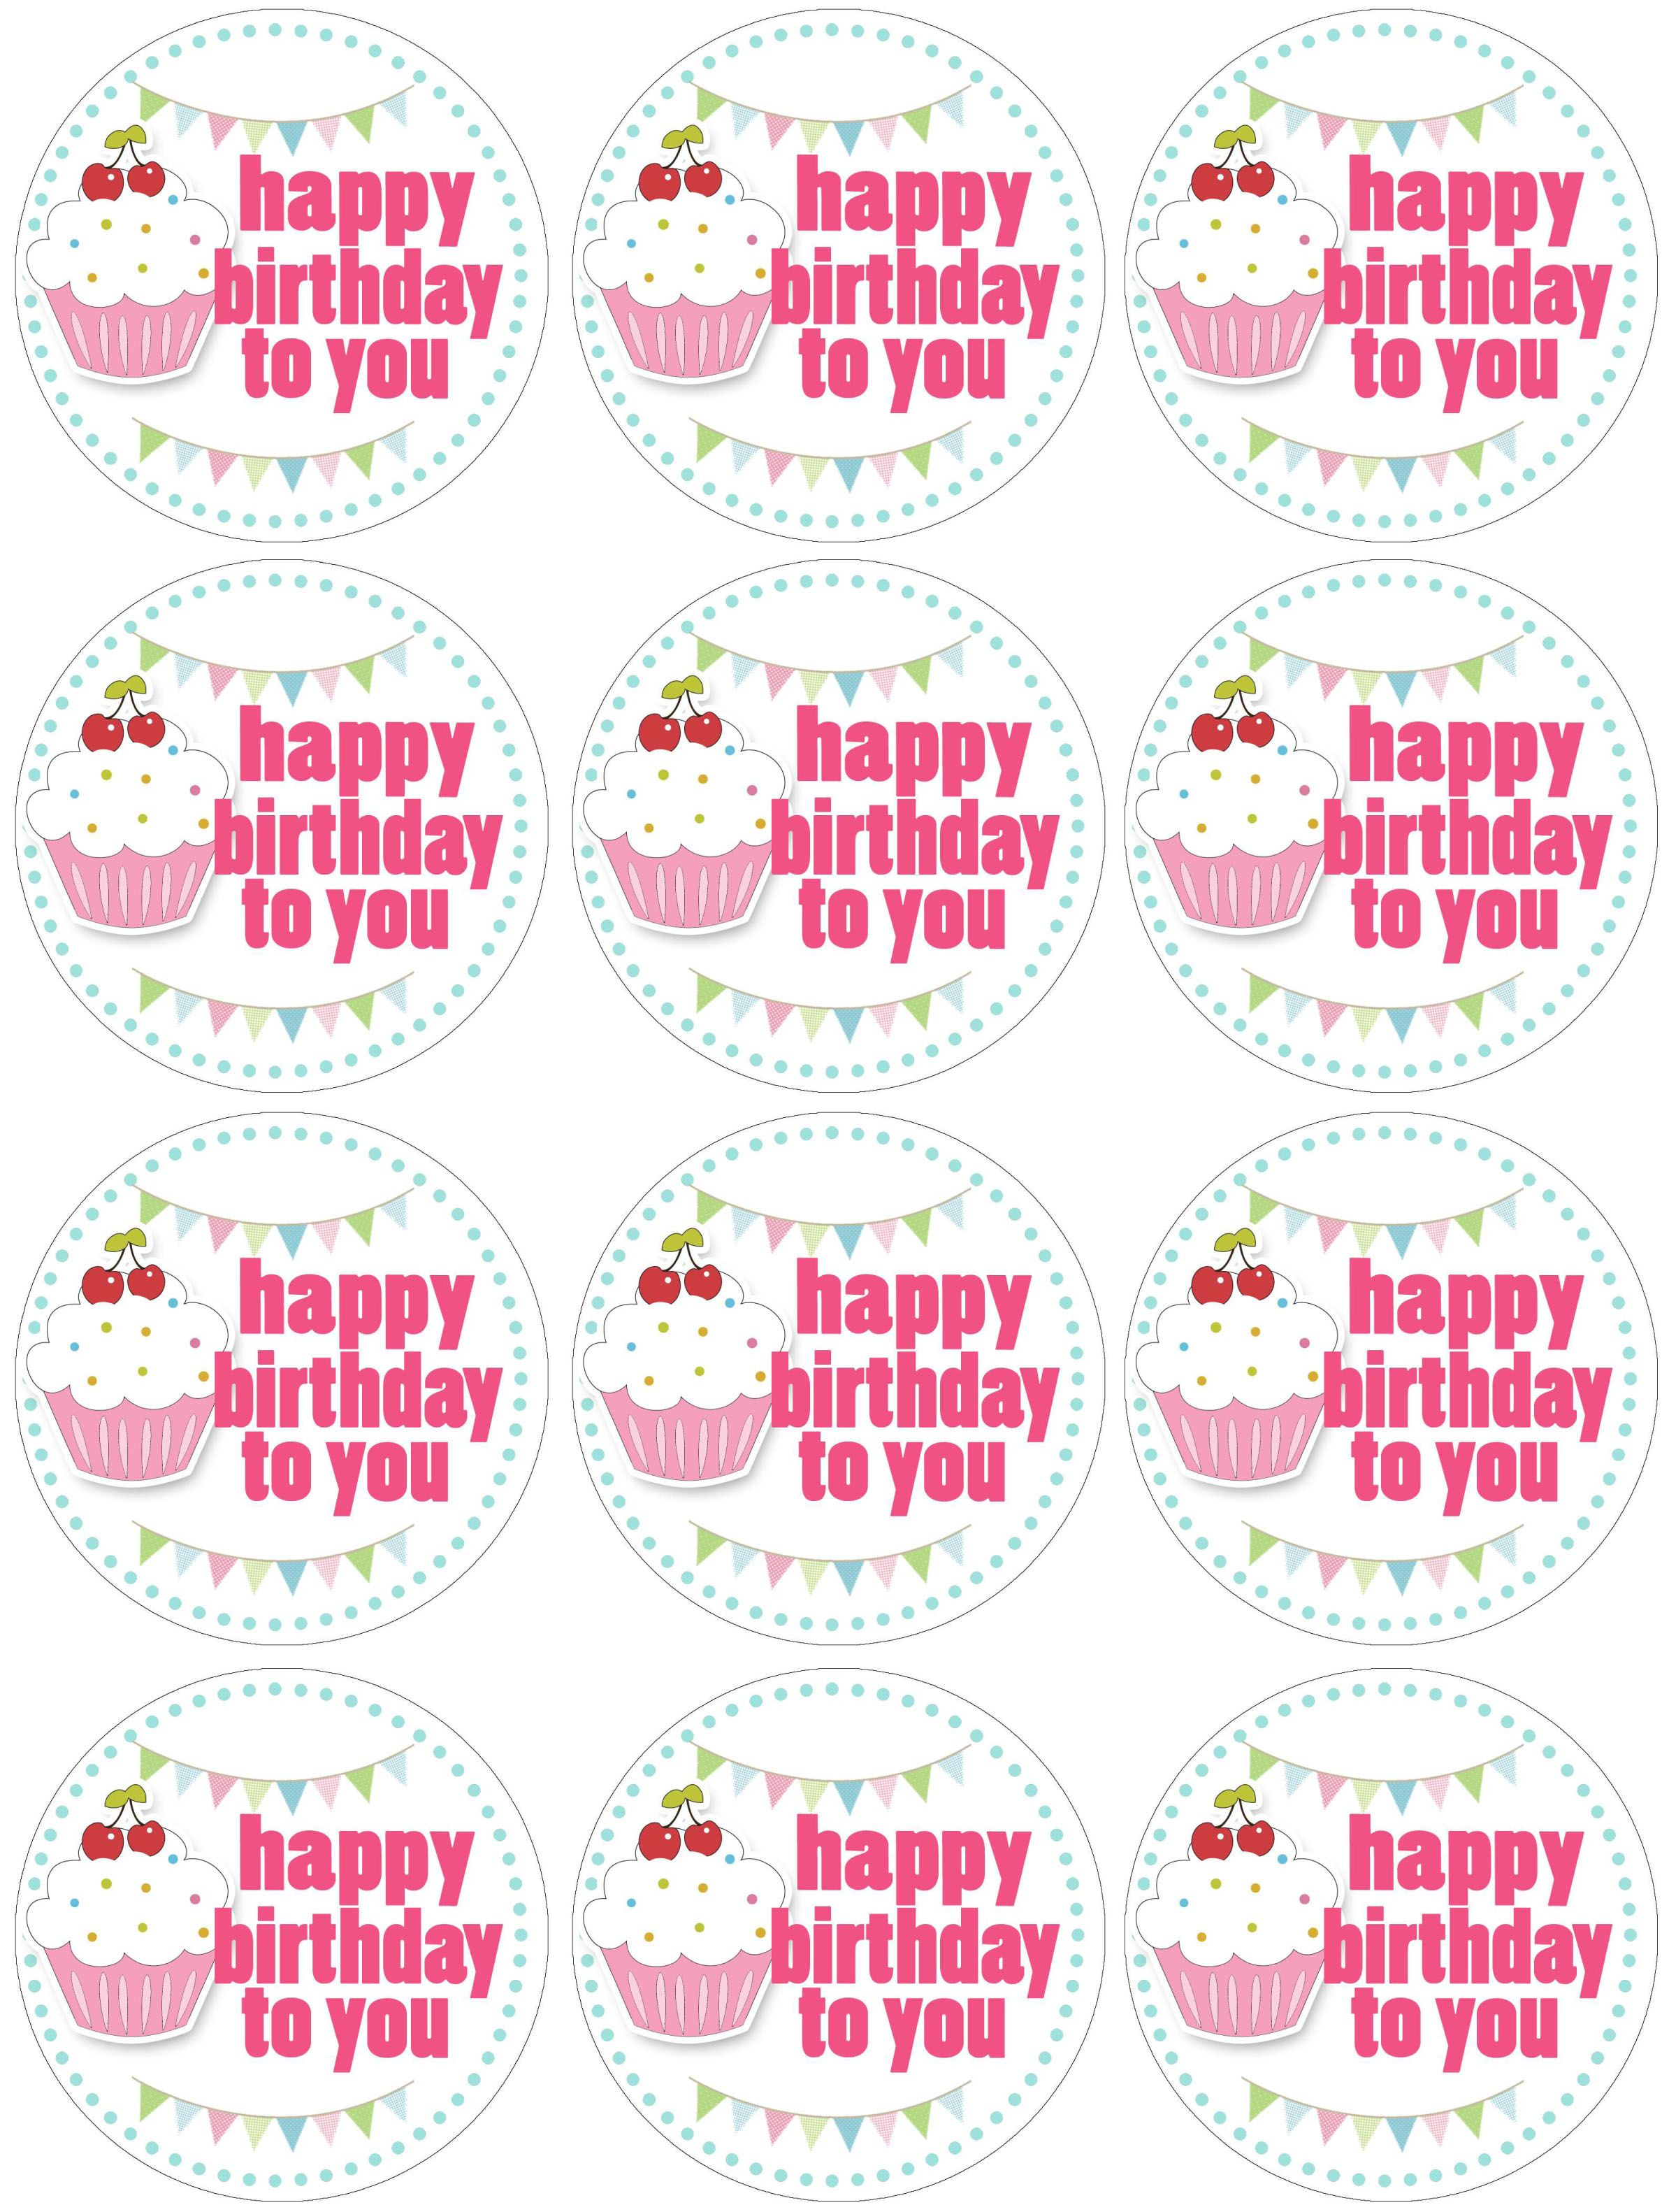 Cupcake Birthday Party With Free Printables   Free Printables - Free Printable Happy Birthday Cake Topper